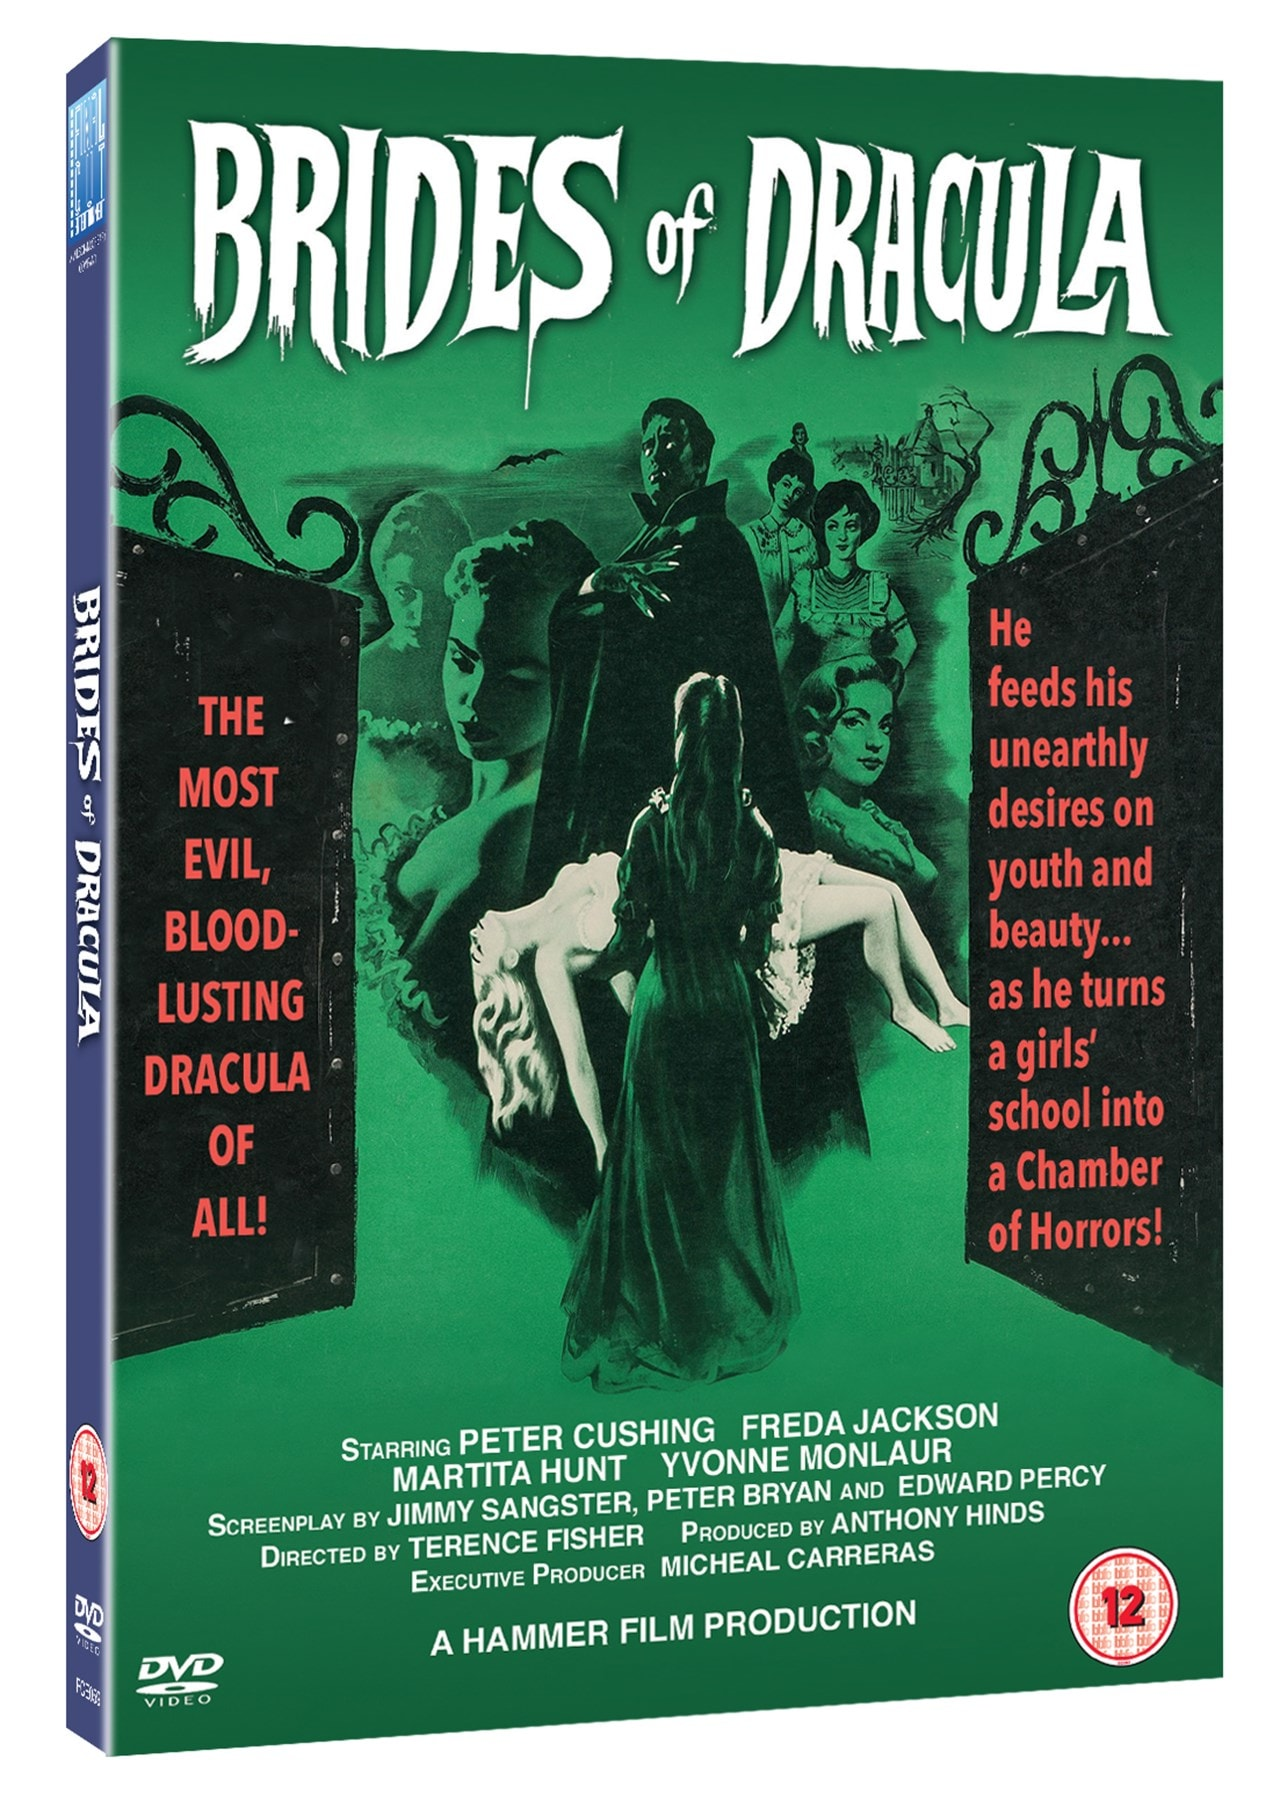 The Brides of Dracula - 2